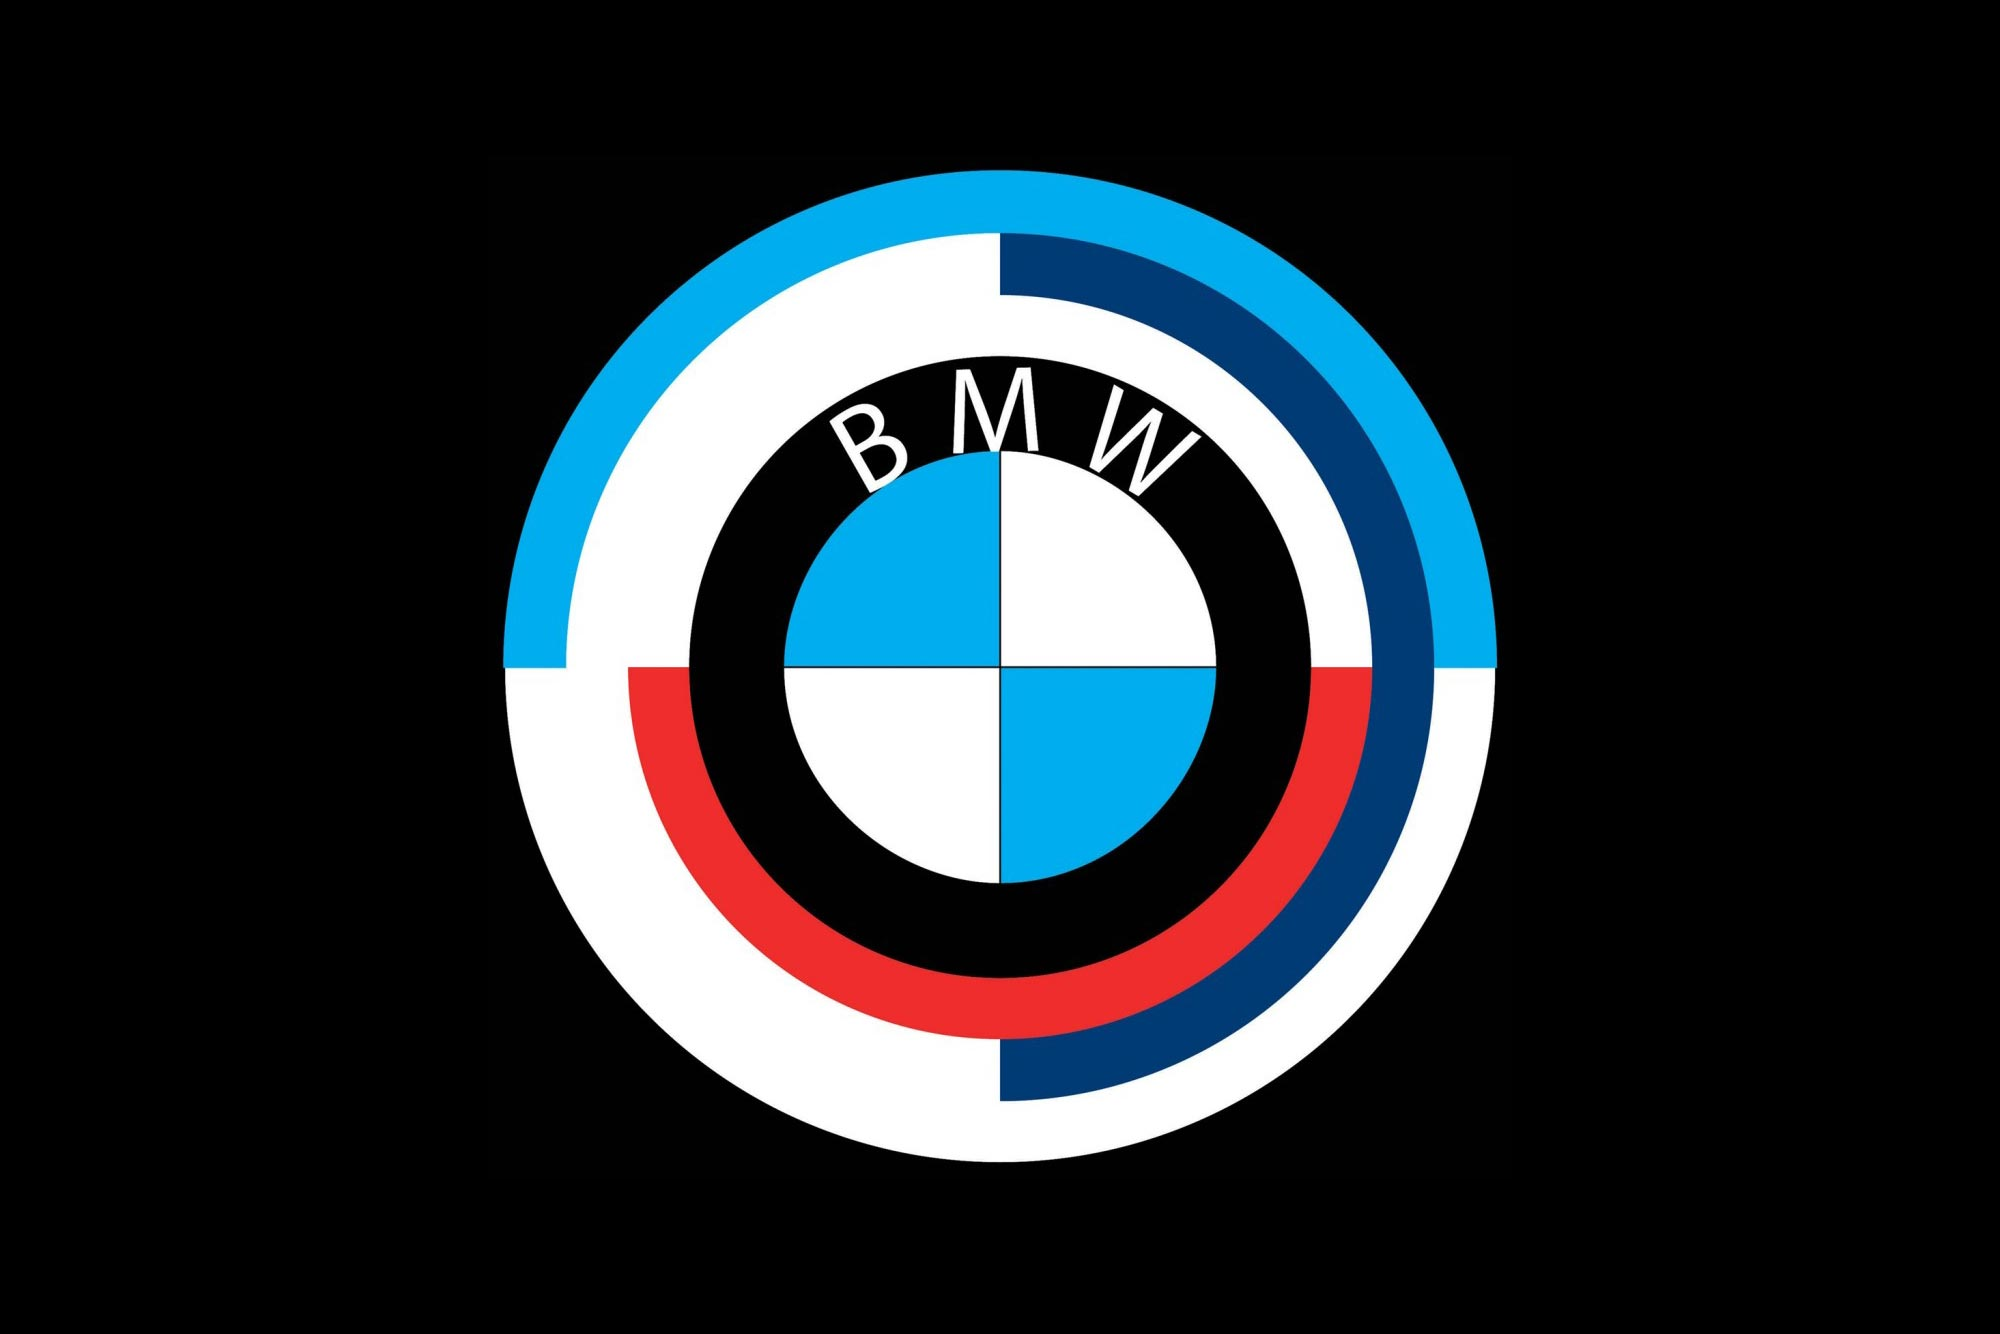 ordinary logo bmw motorrad #4: Despite having rough sales in June (-5.7%), BMW Motorrad says it had its  best six-month spread every during the first half of 2014, with the German  ...